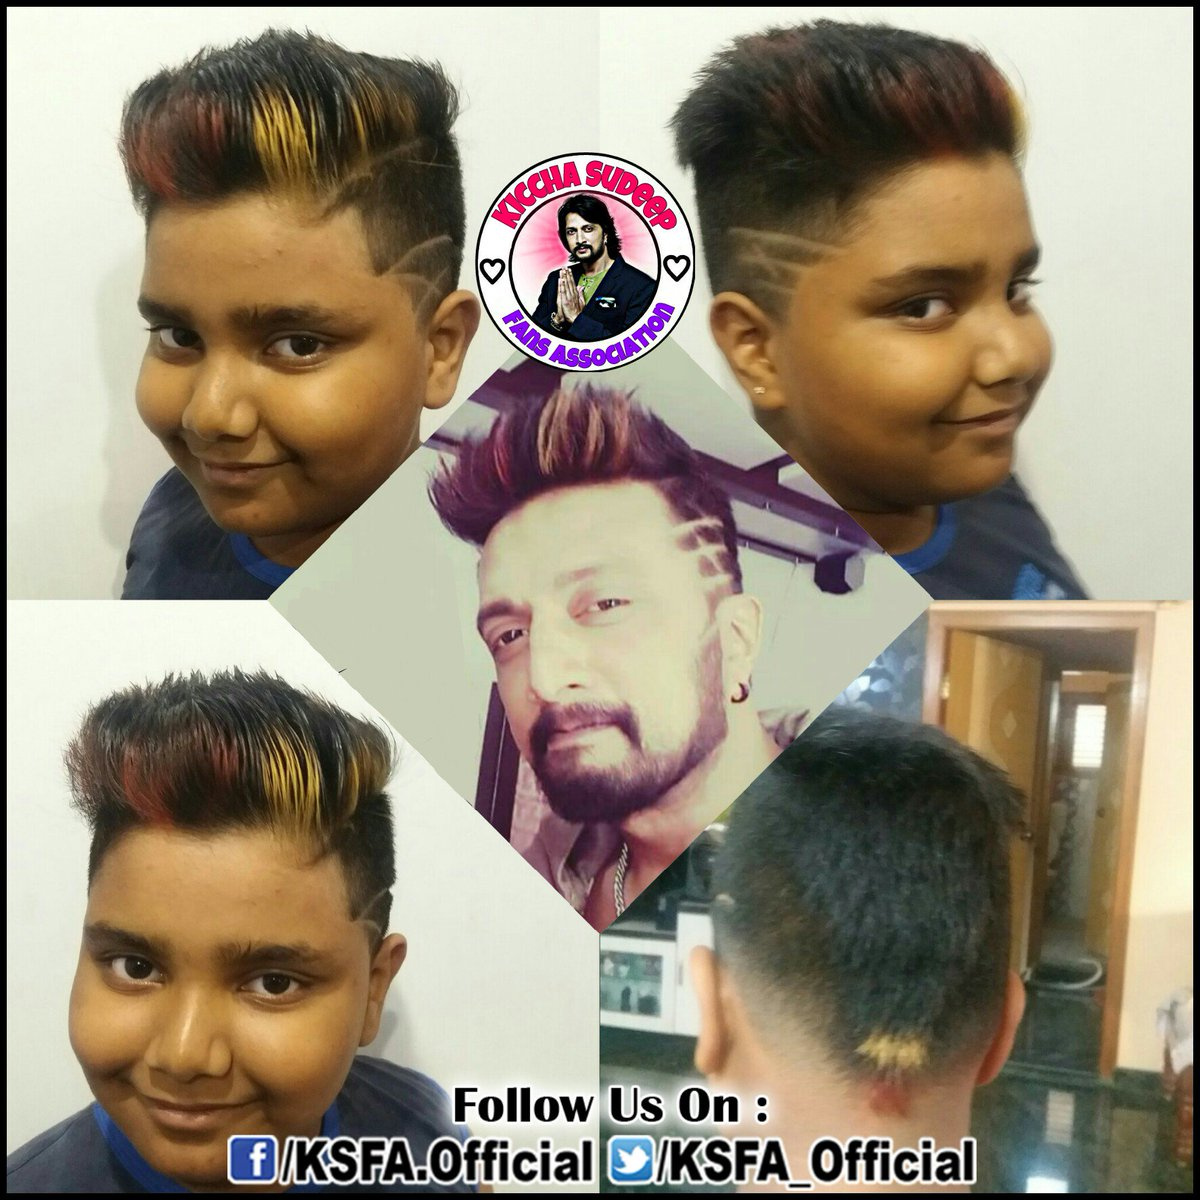 KICCHASUDEEPFANS(A)® @KSFA_Official. Replying to @KSFA_Official @ KicchaSudeep ...